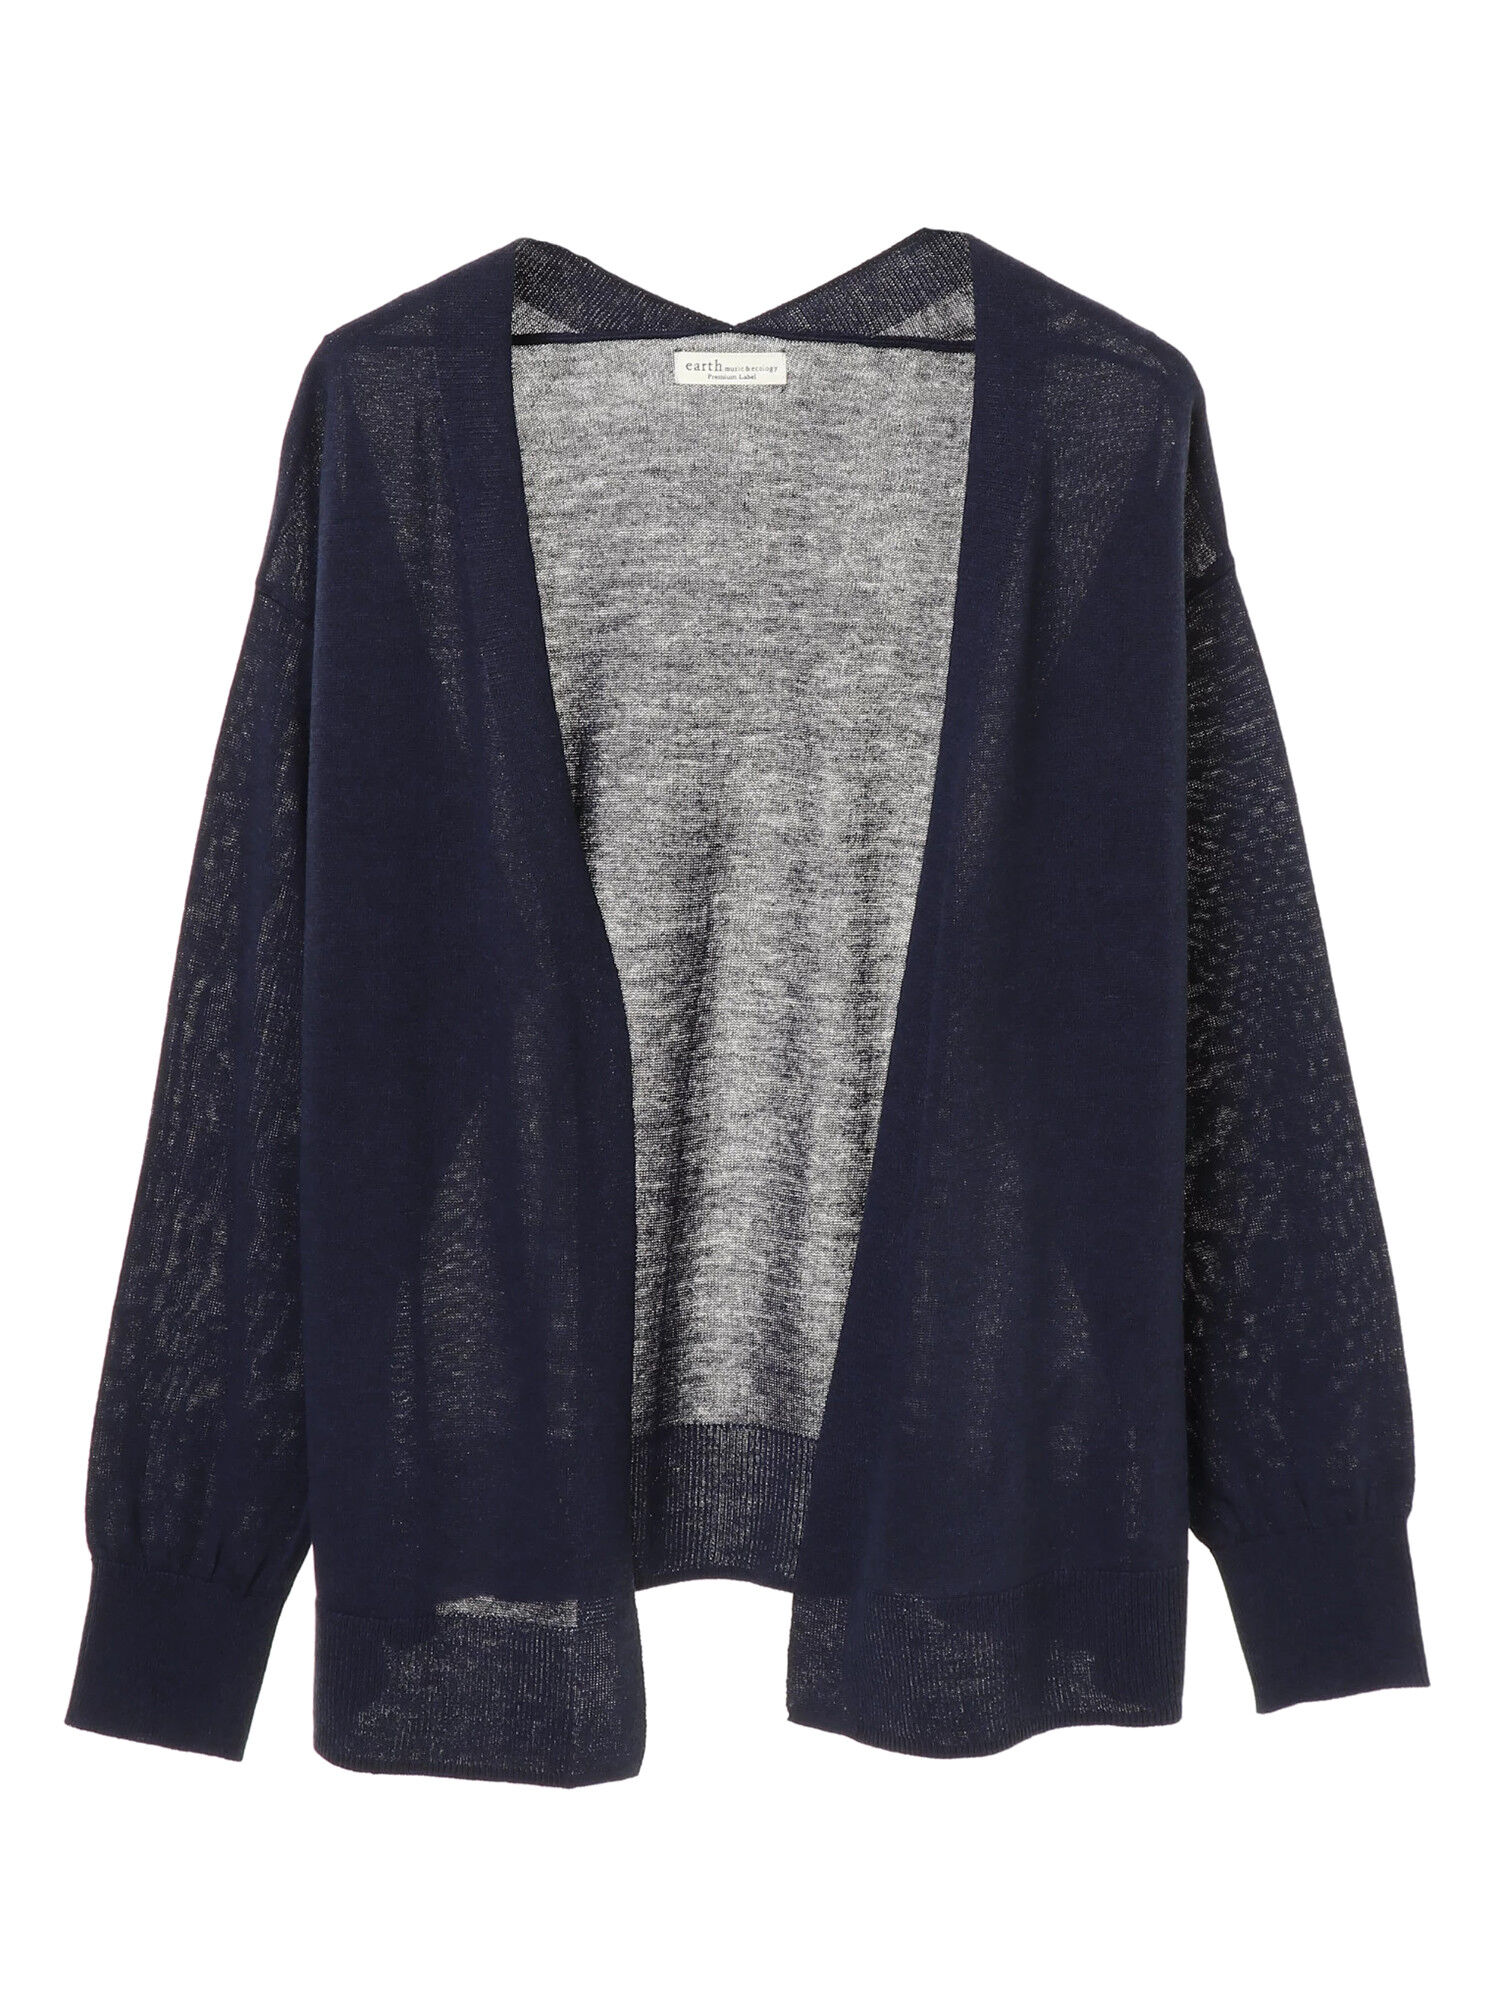 Earth, Music & Ecology Clyvon Cardigan - Navy